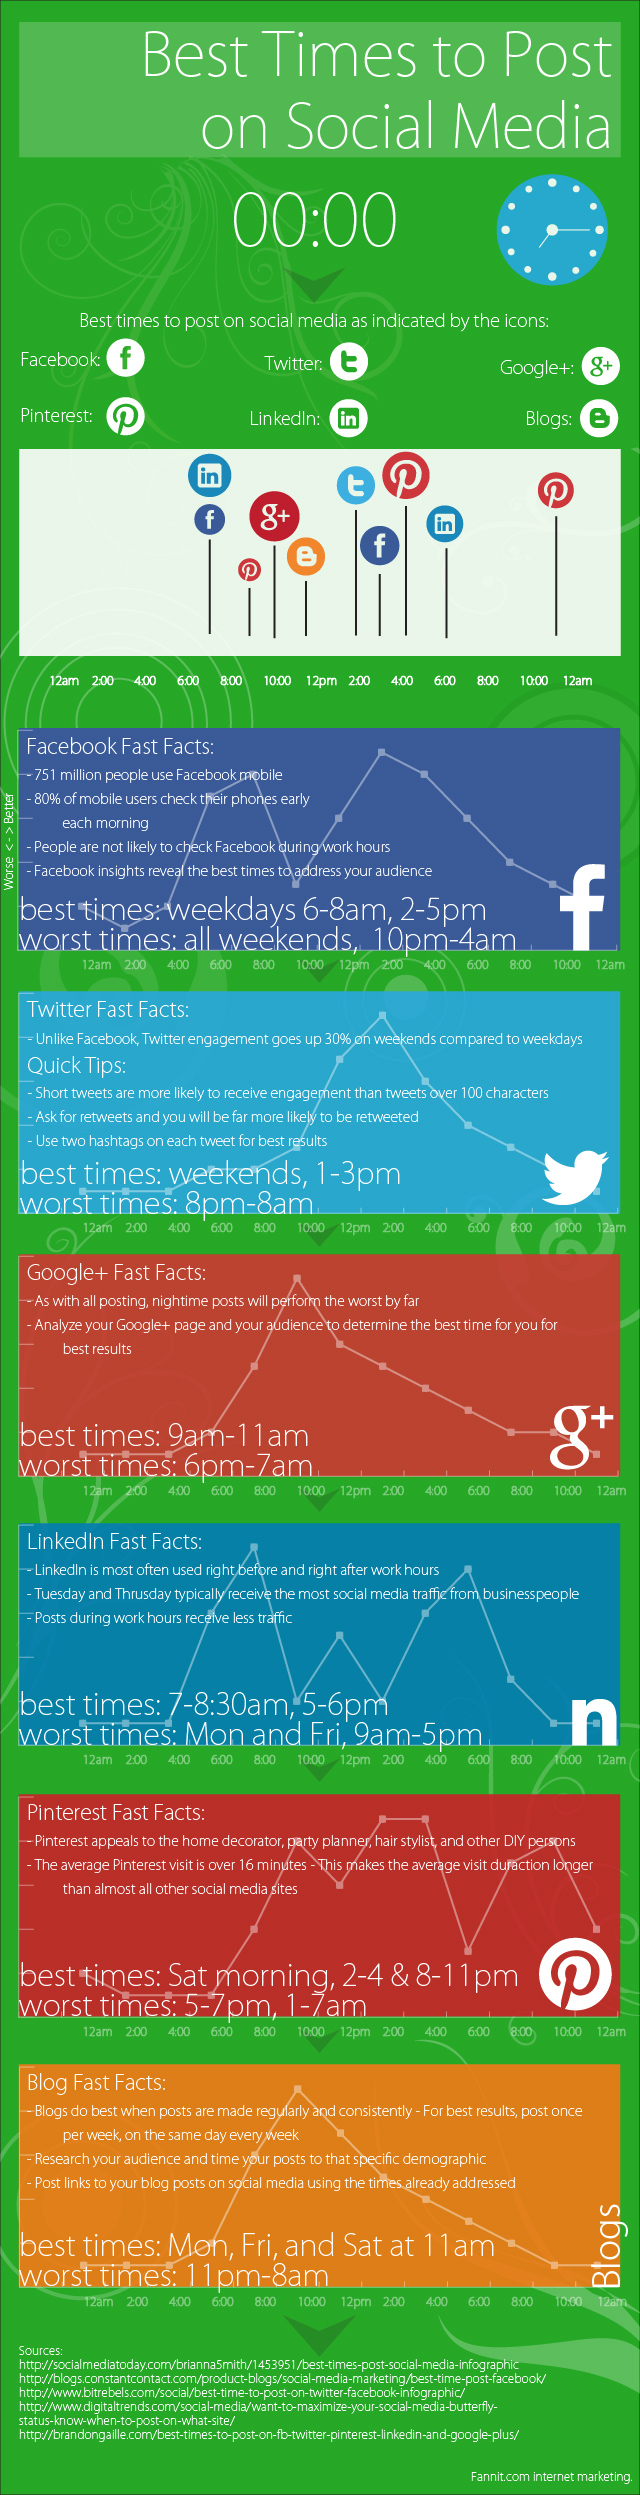 social media infographic when are the best times to post